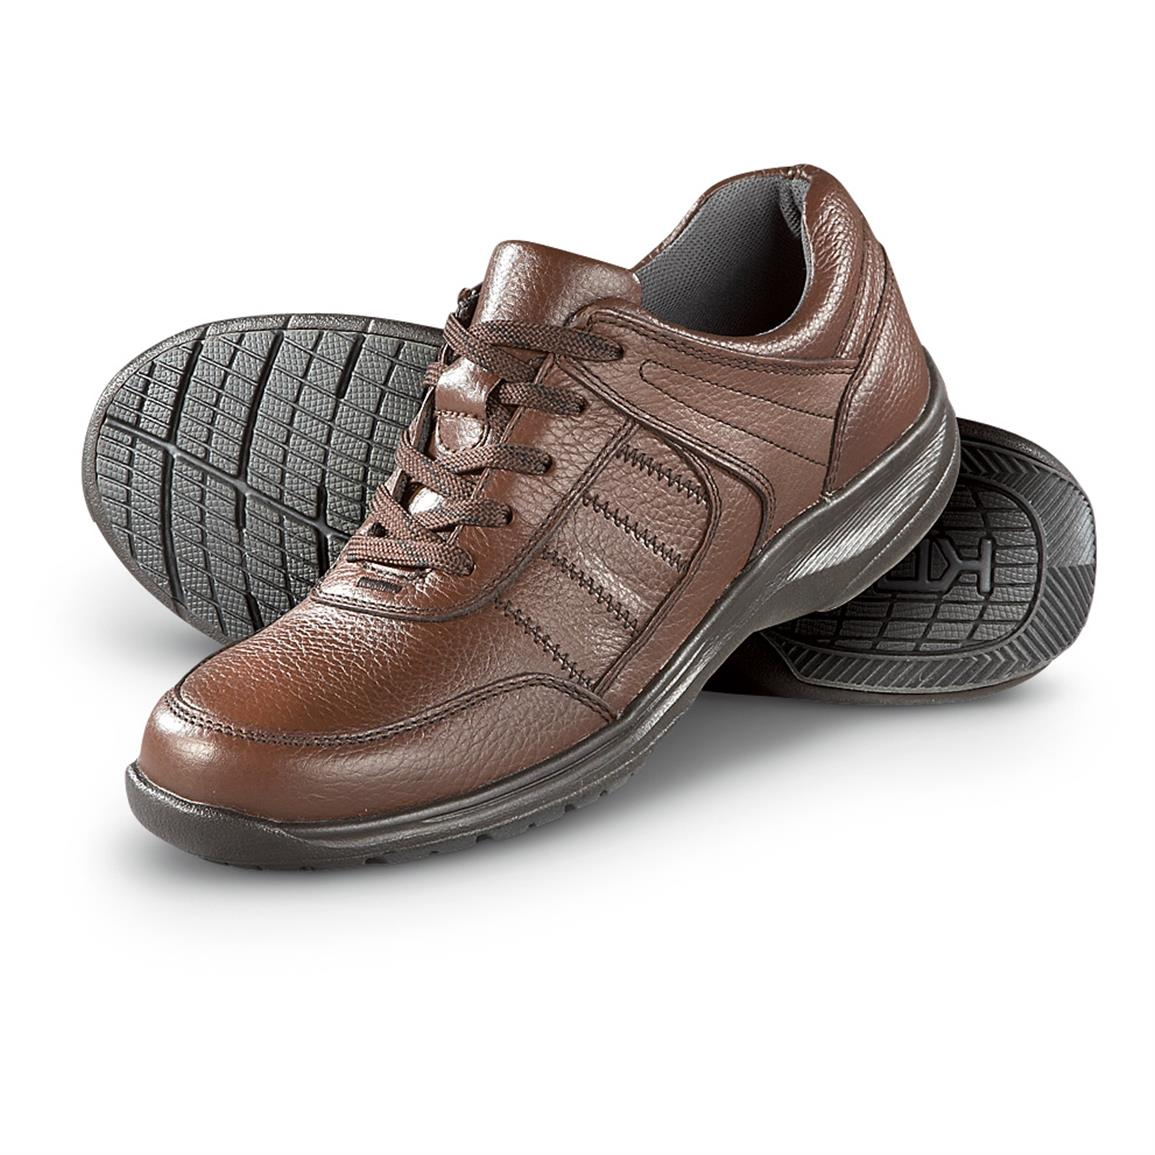 Nunn bush shoes- both comfort and style